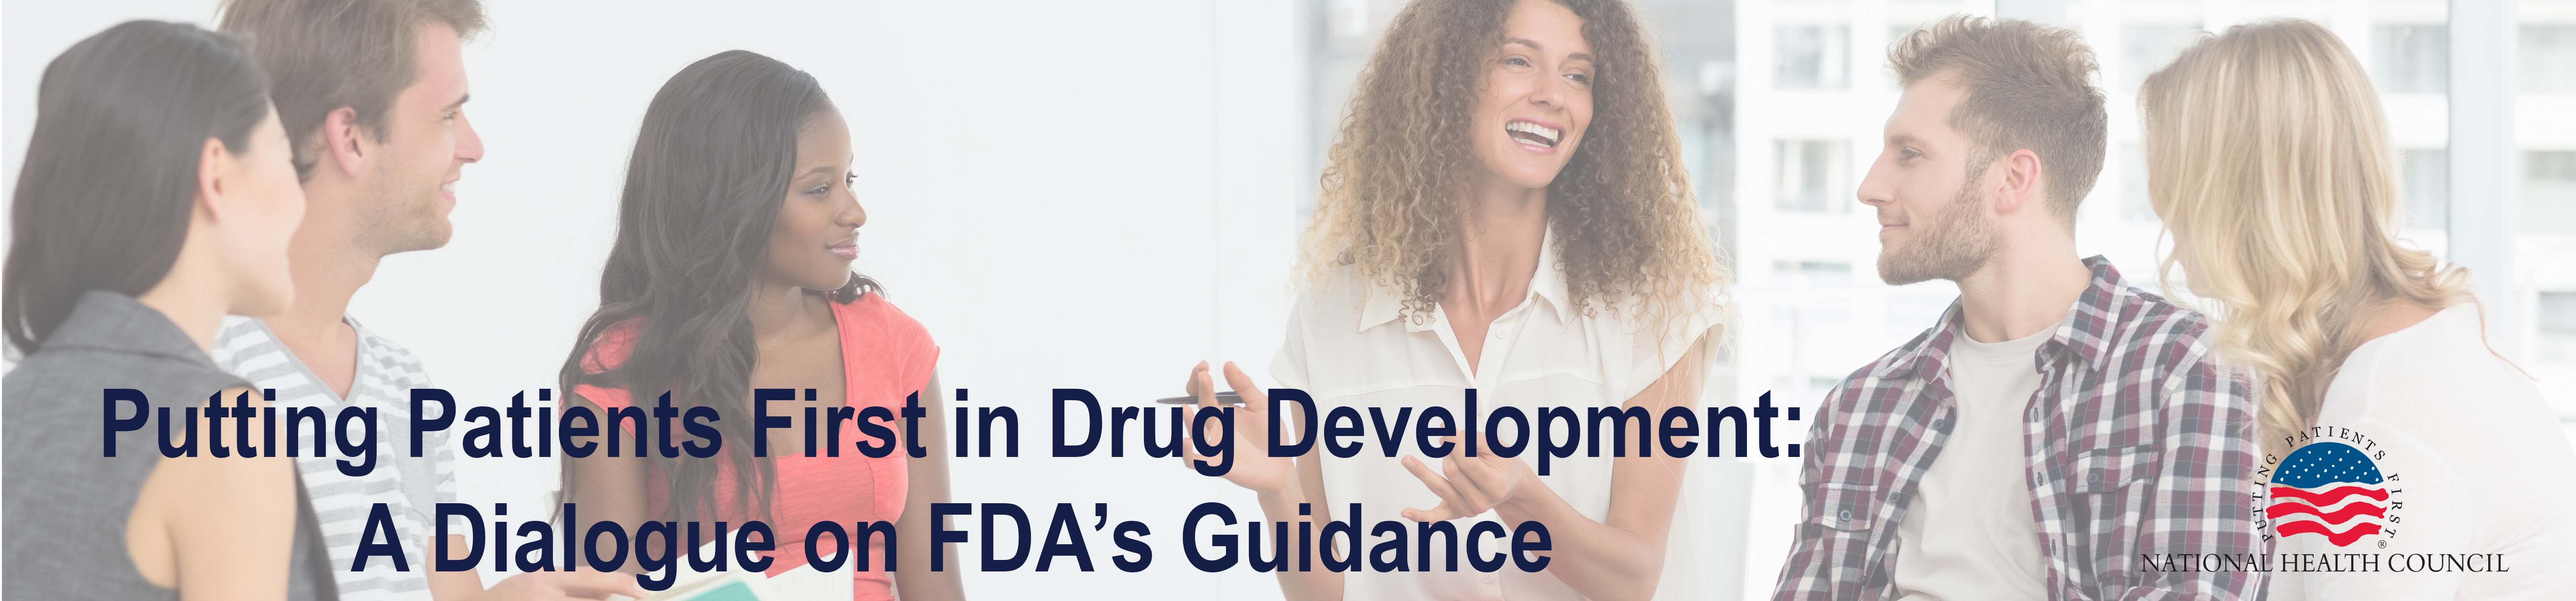 Putting Patients First in Drug Development: A Dialogue on FDA's Guidance